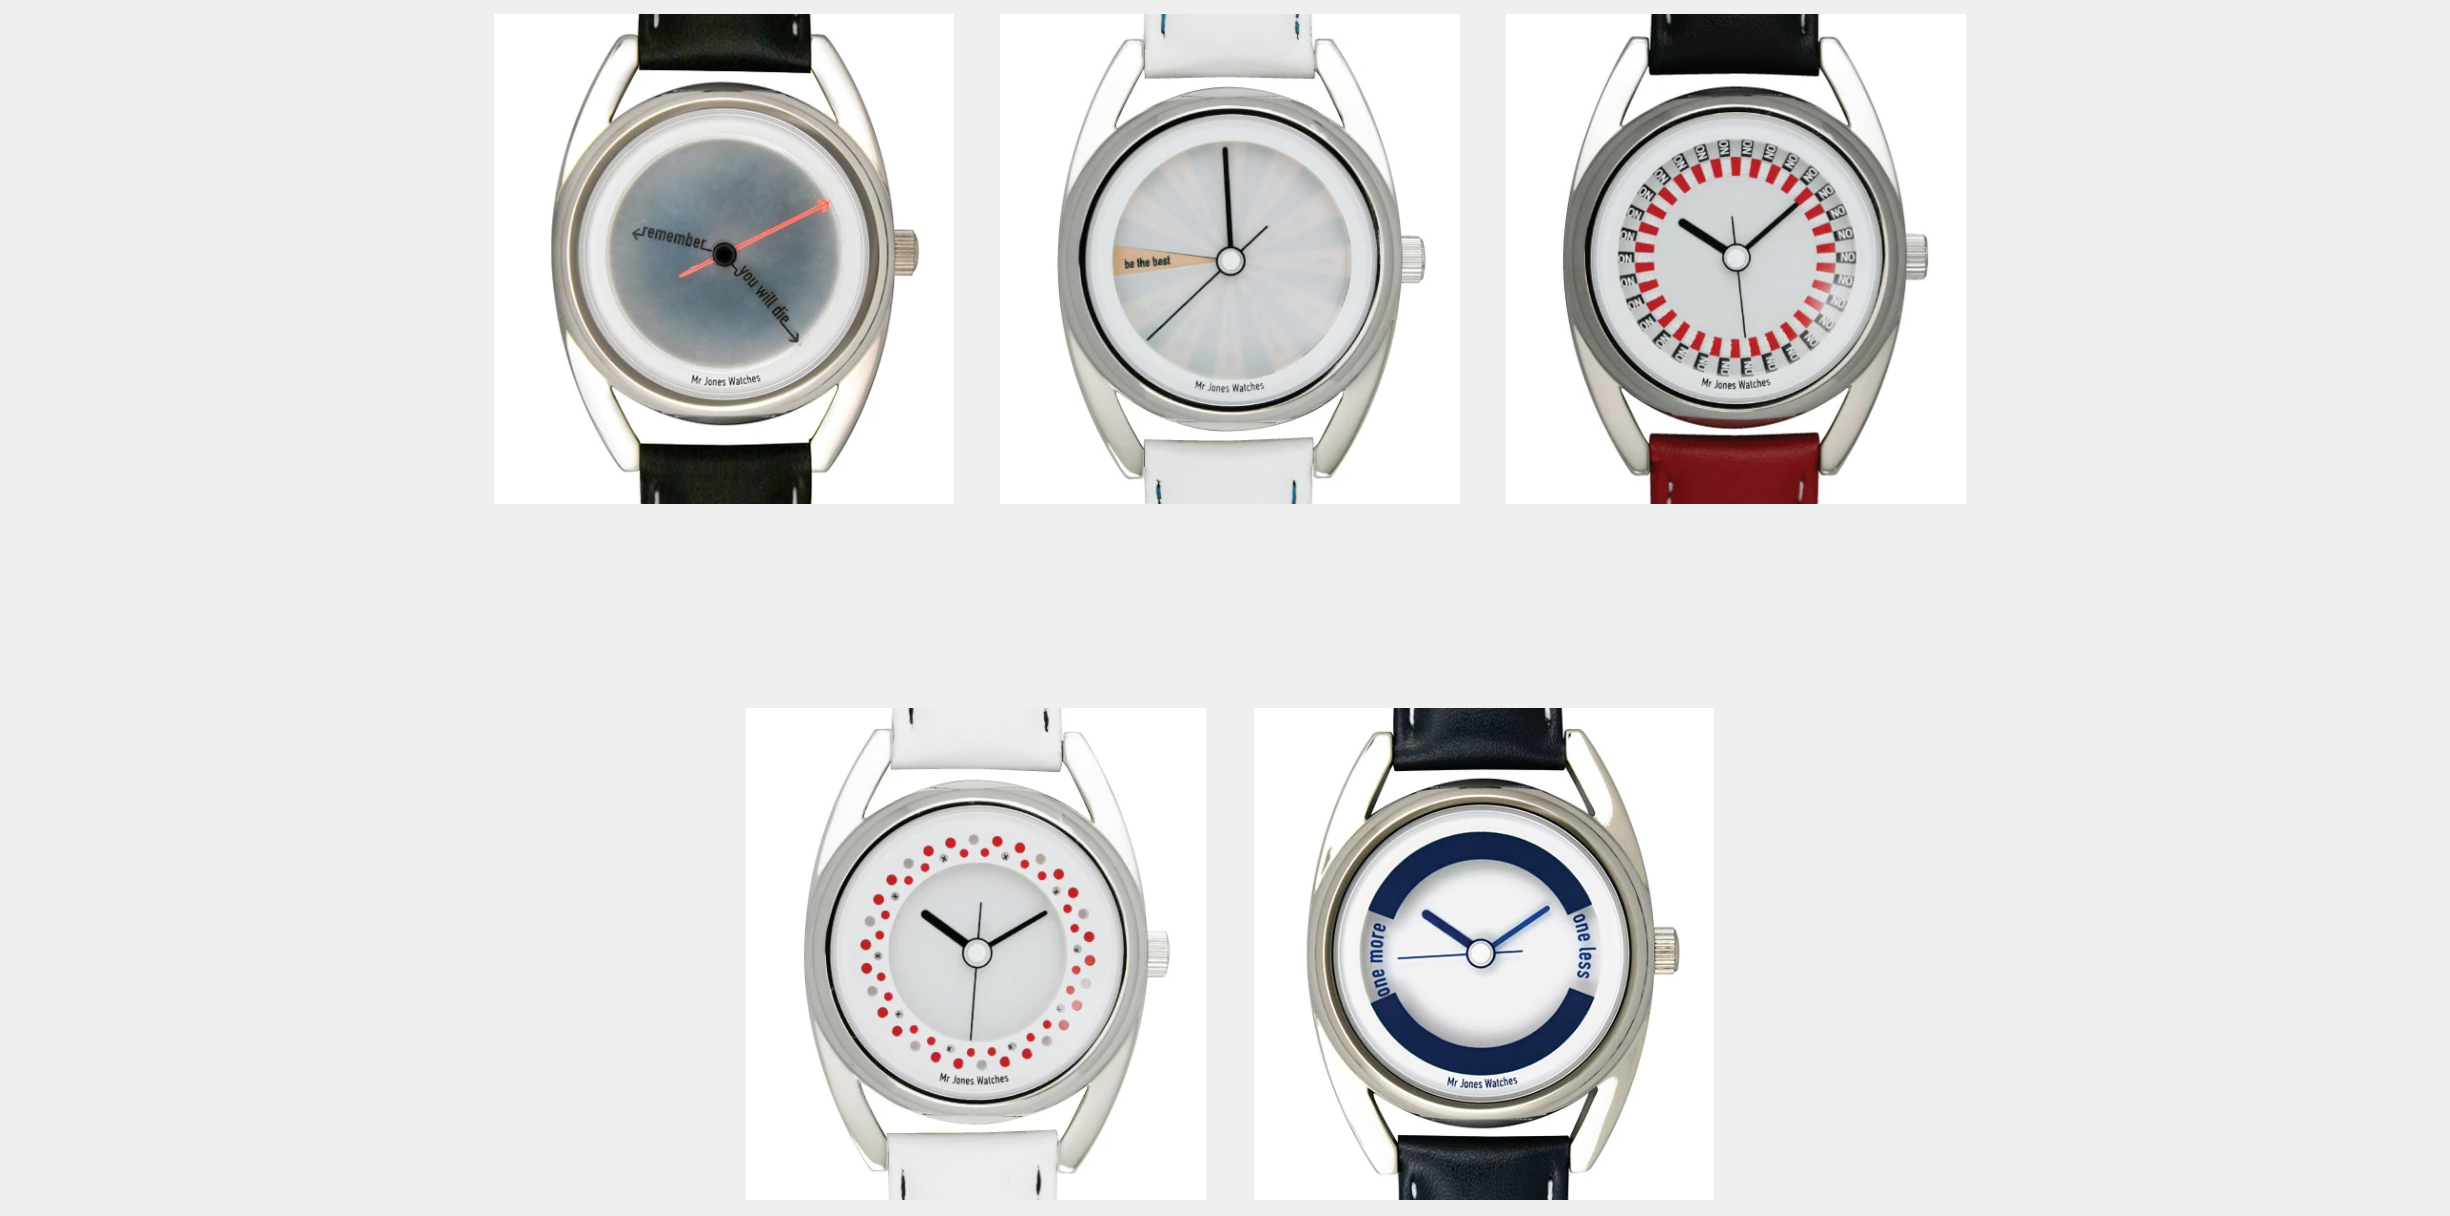 Watches from 2007 design archive